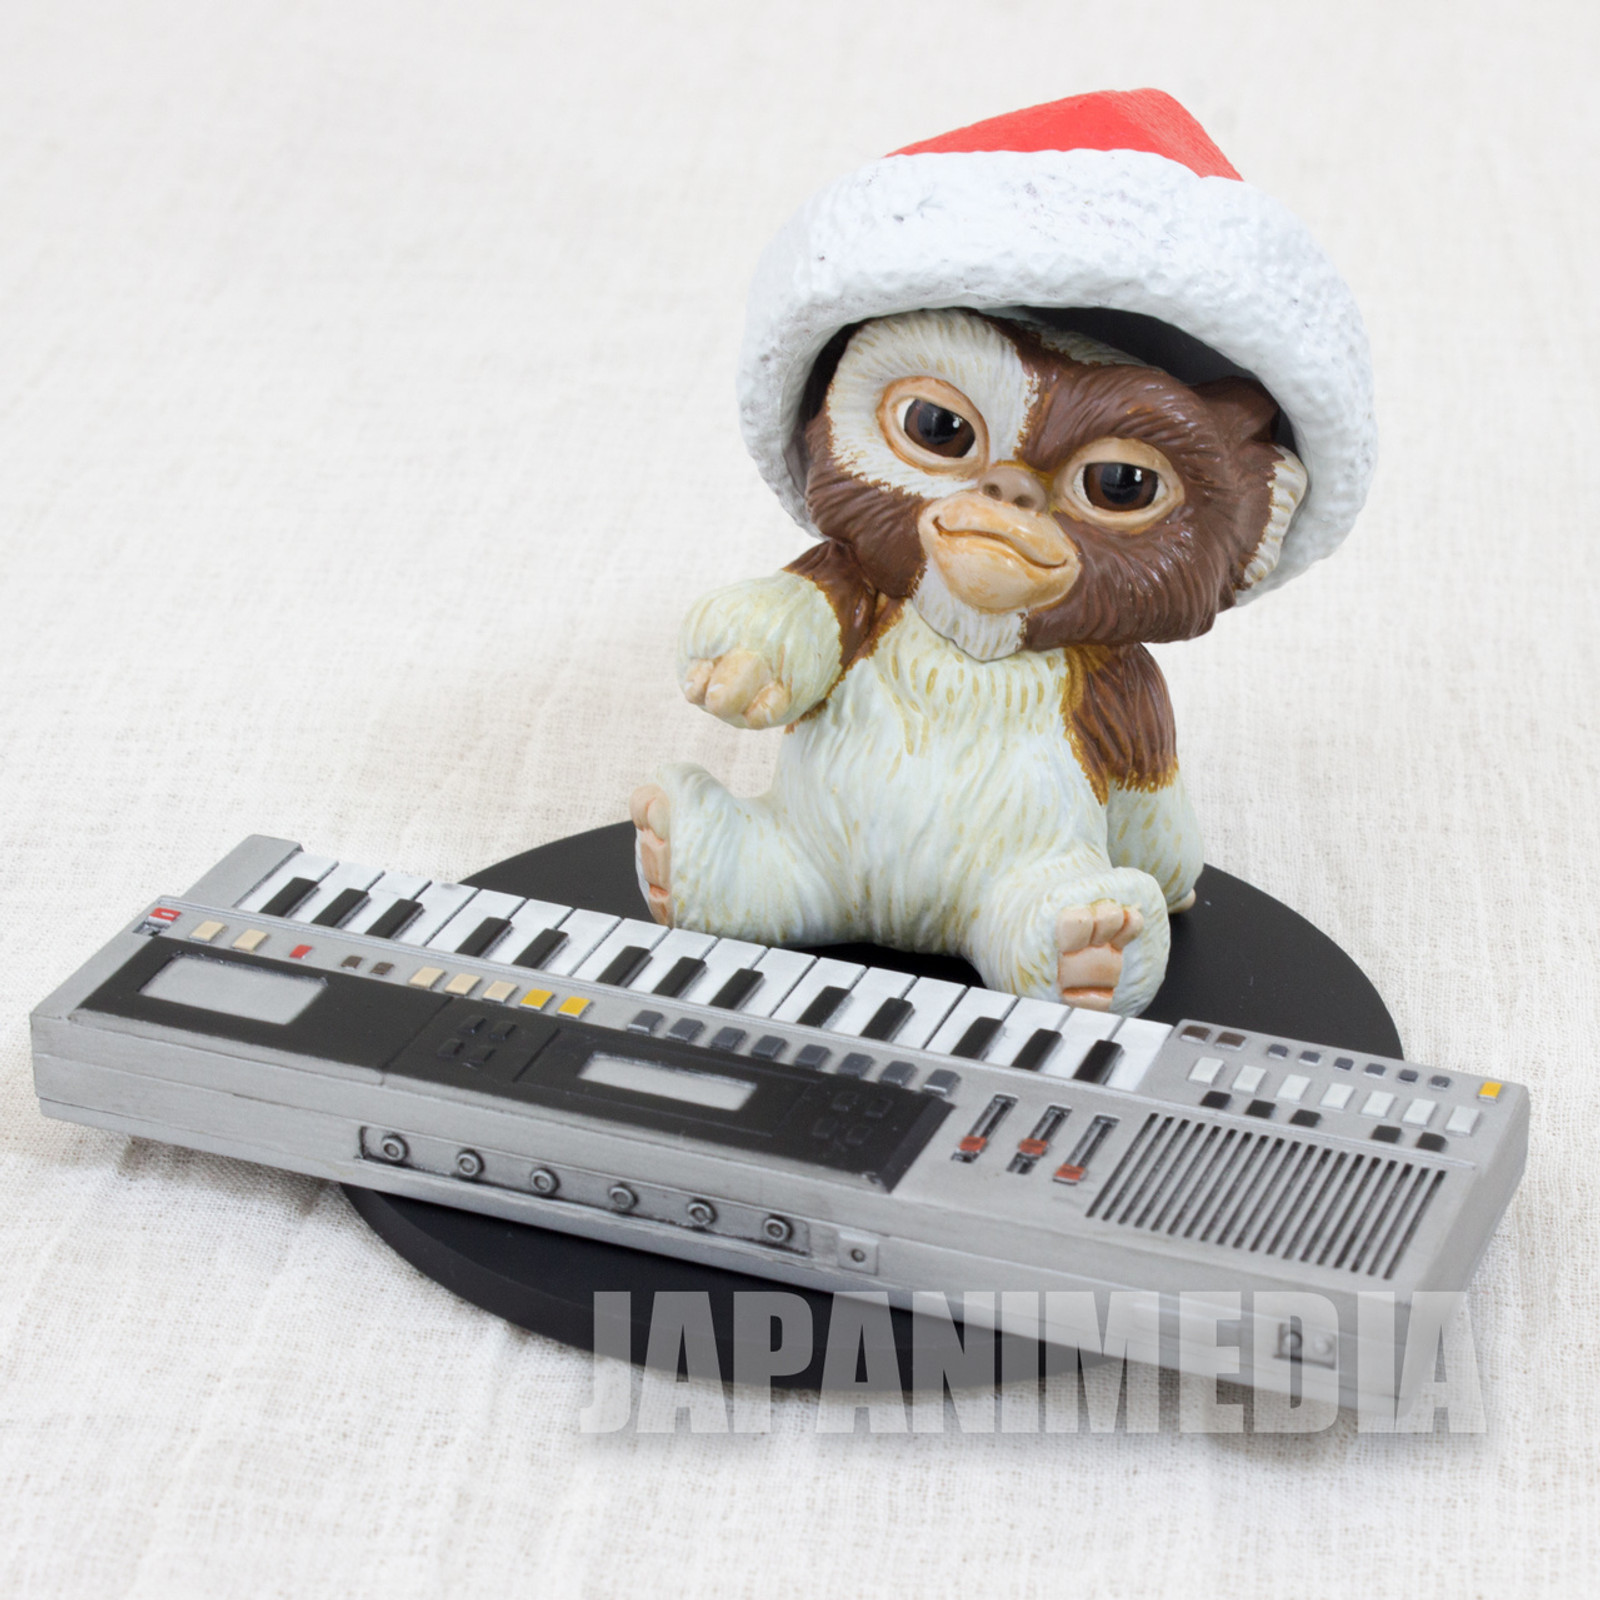 RARE Gremlins Gizmo Keyboard One Coin Figure Series Kotobukiya JAPAN